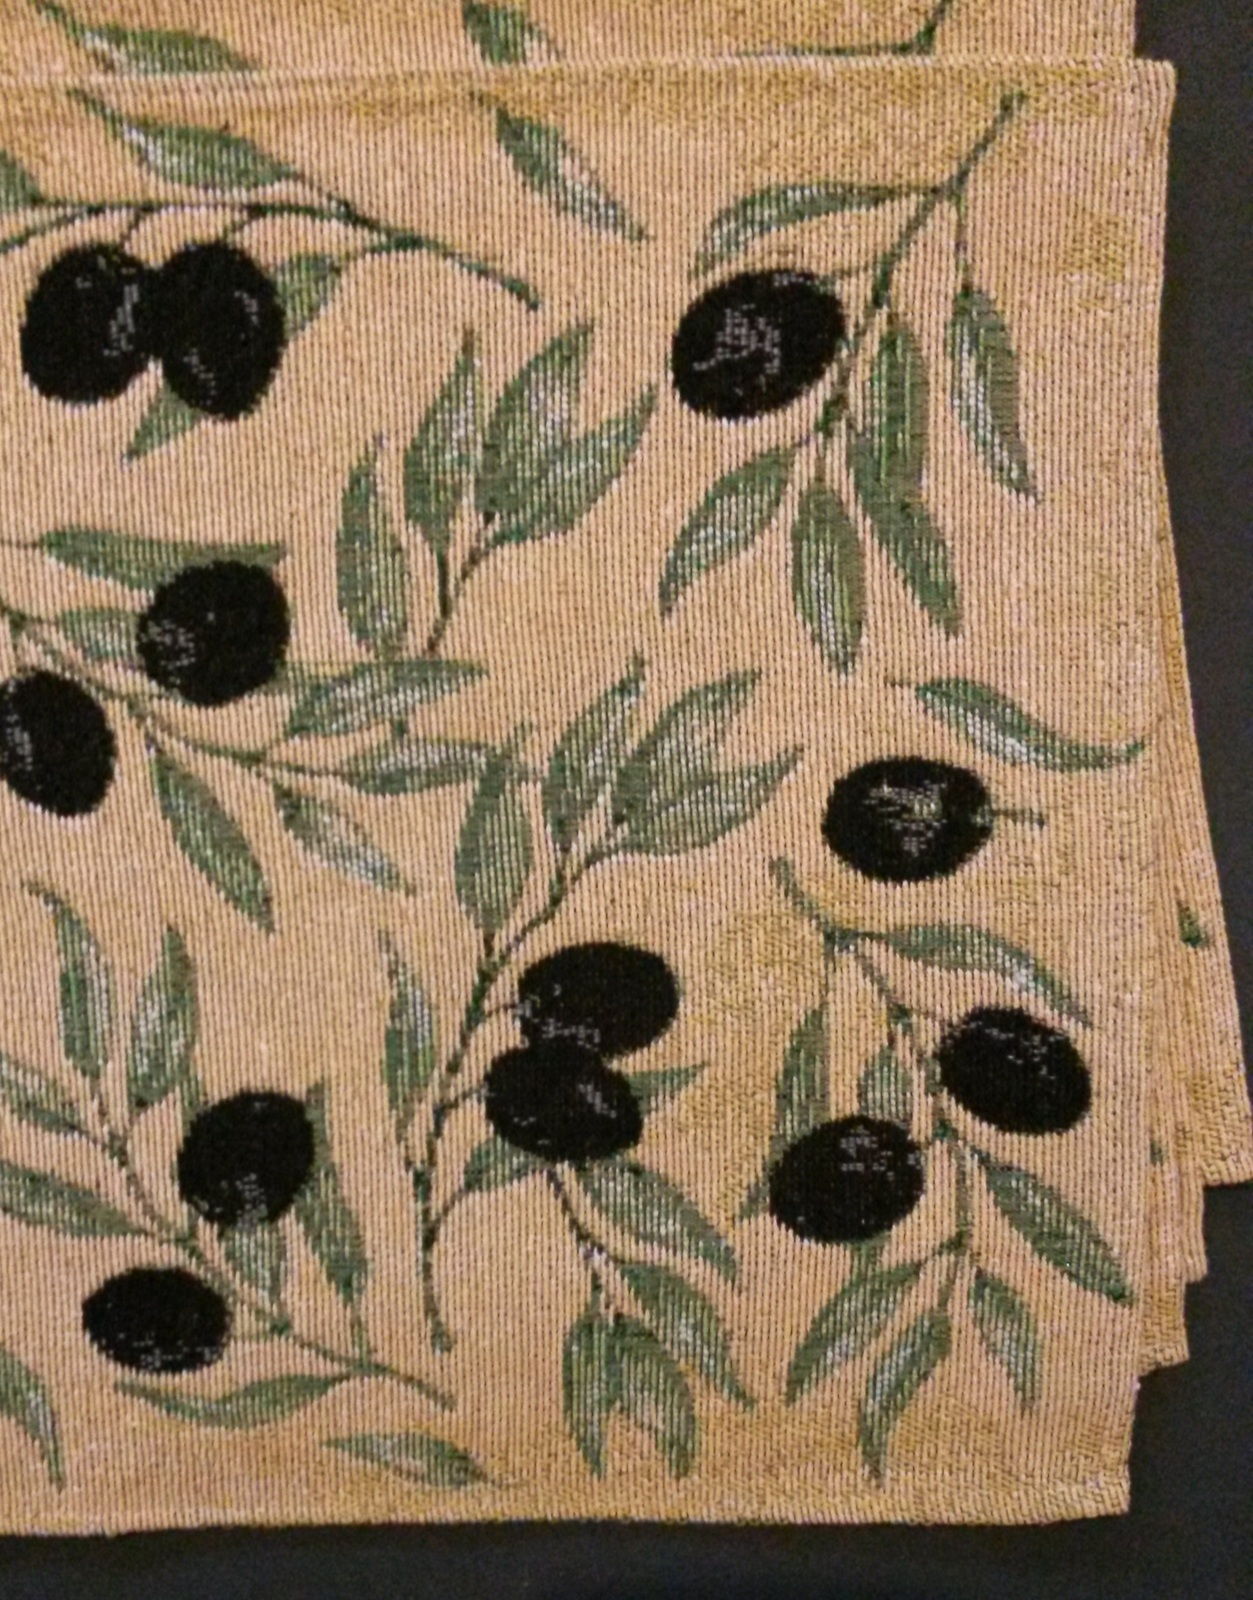 OLIVES TAPESTRY PLACEMATS Set of 4 Mediterranean Olive Branch Fabric 13x19 NEW